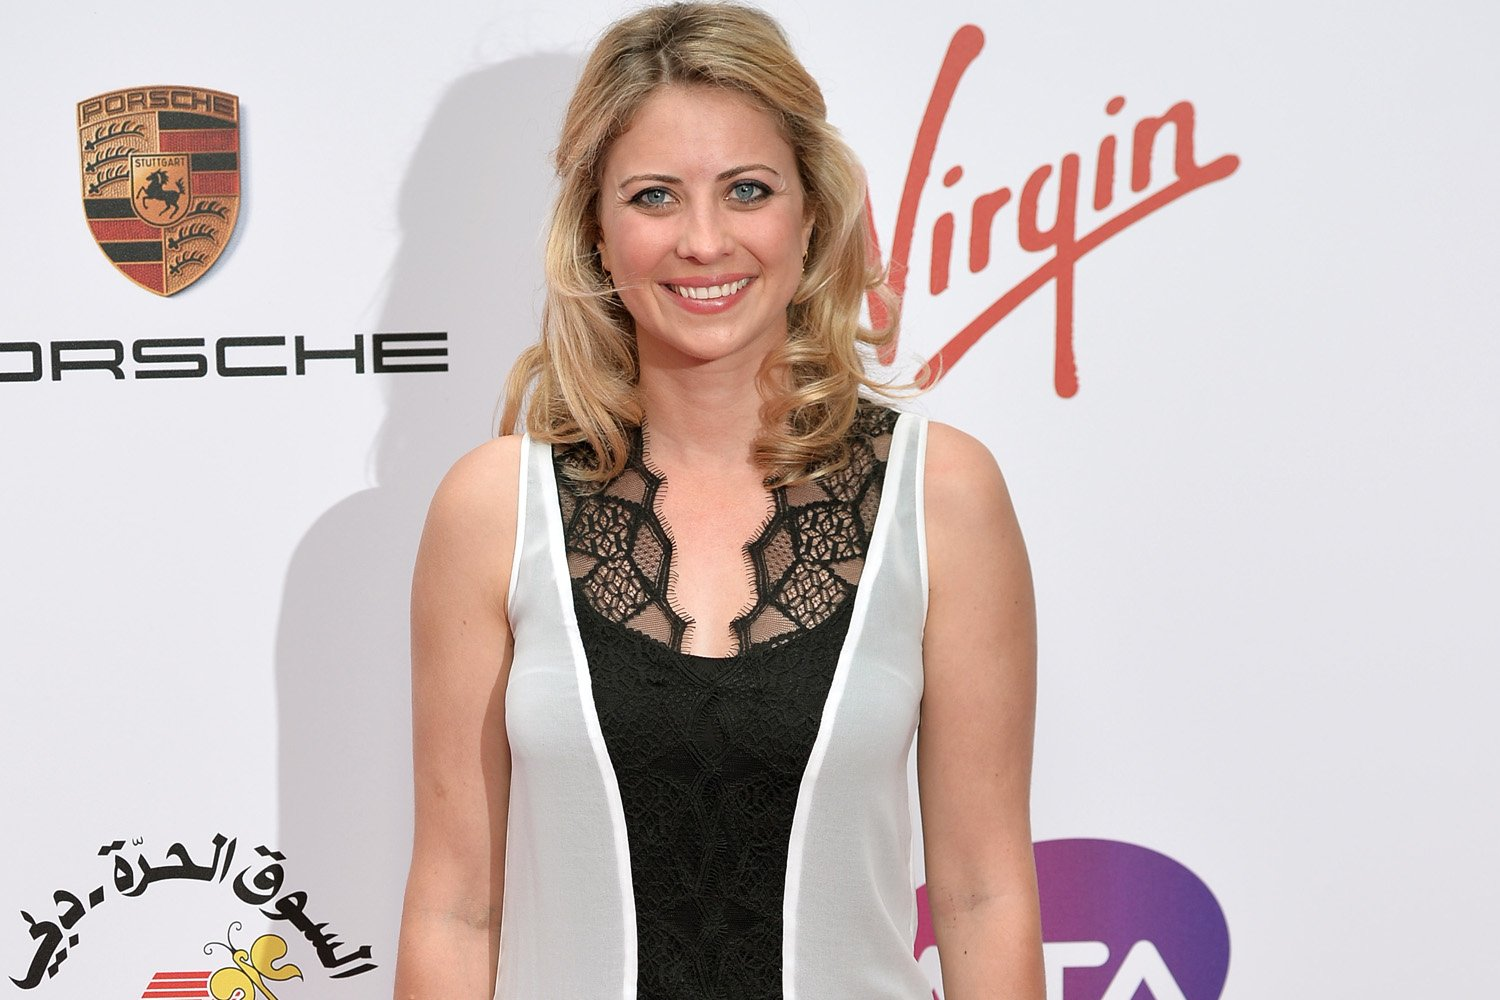 Holly Branson attending the WTA Pre-Wimbledon Party at The Roof Gardens, Kensington, London. PRESS ASSOCIATION Photo. Picture date: Thursday June 19, 2014. Photo credit should read: Anthony Devlin/PA Wire